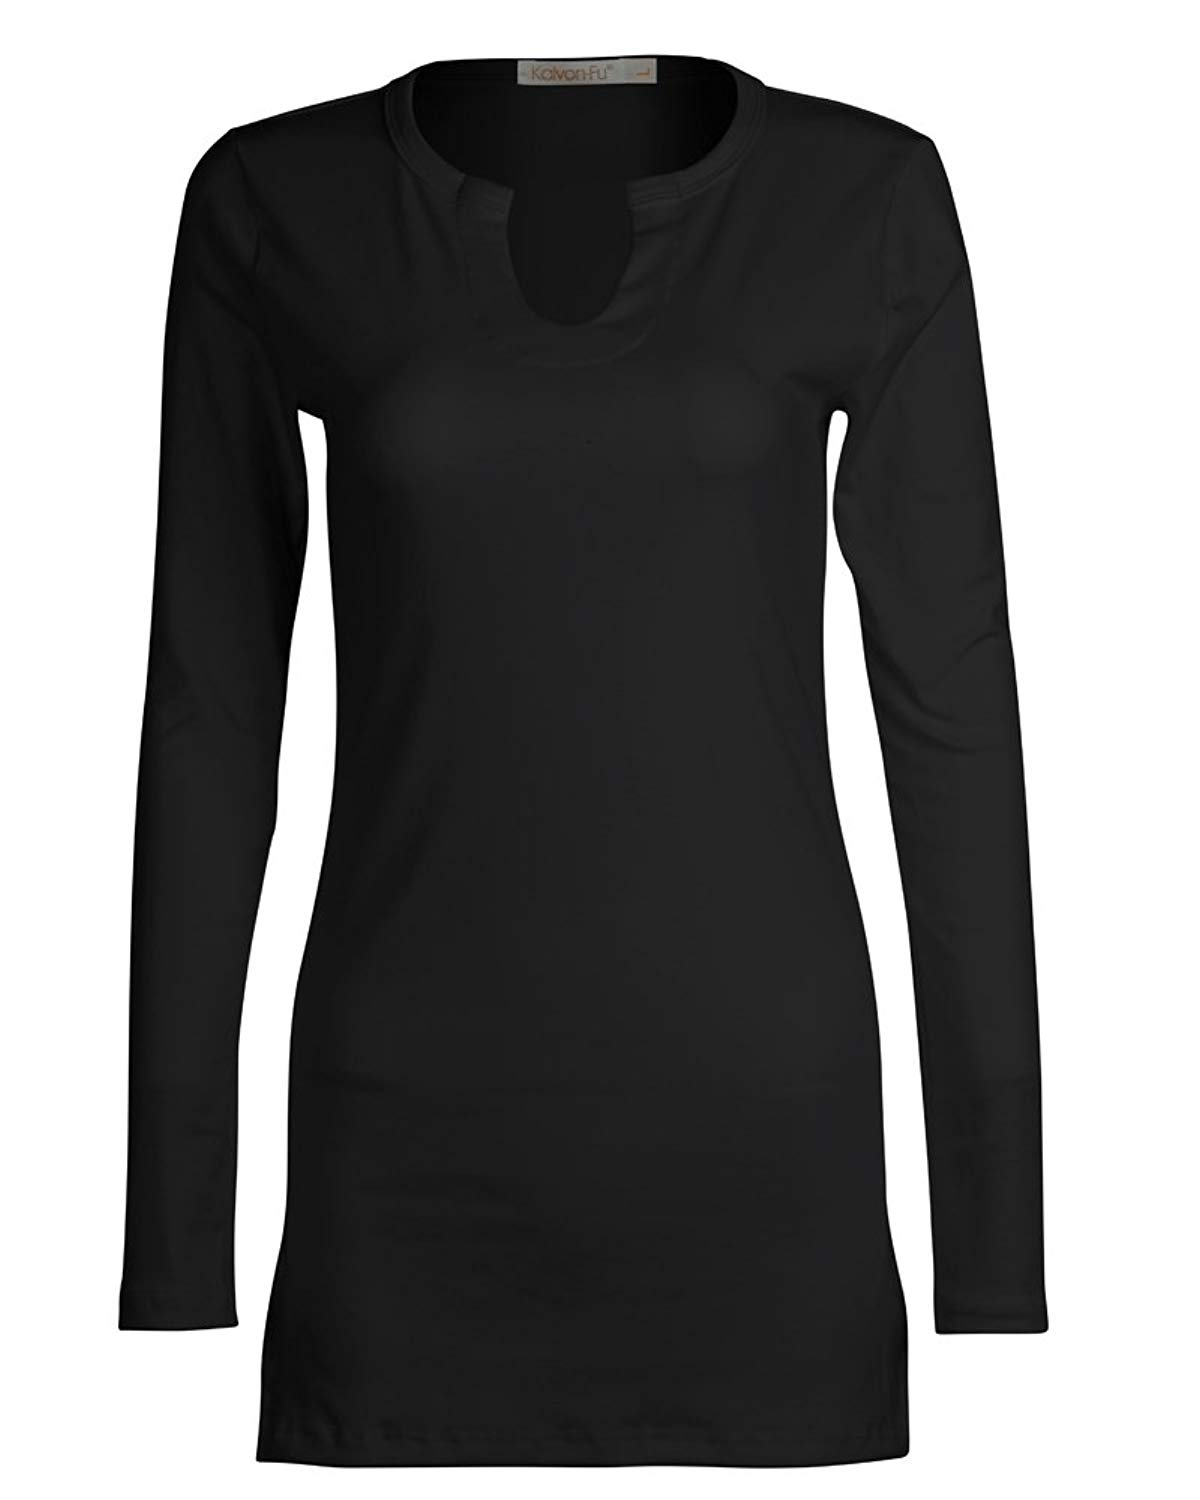 4ab9ba6066 Get Quotations · KalvonFu Women's Cotton Sexy Long Sleeve Fitted V-Neck  Henley T-Shirt